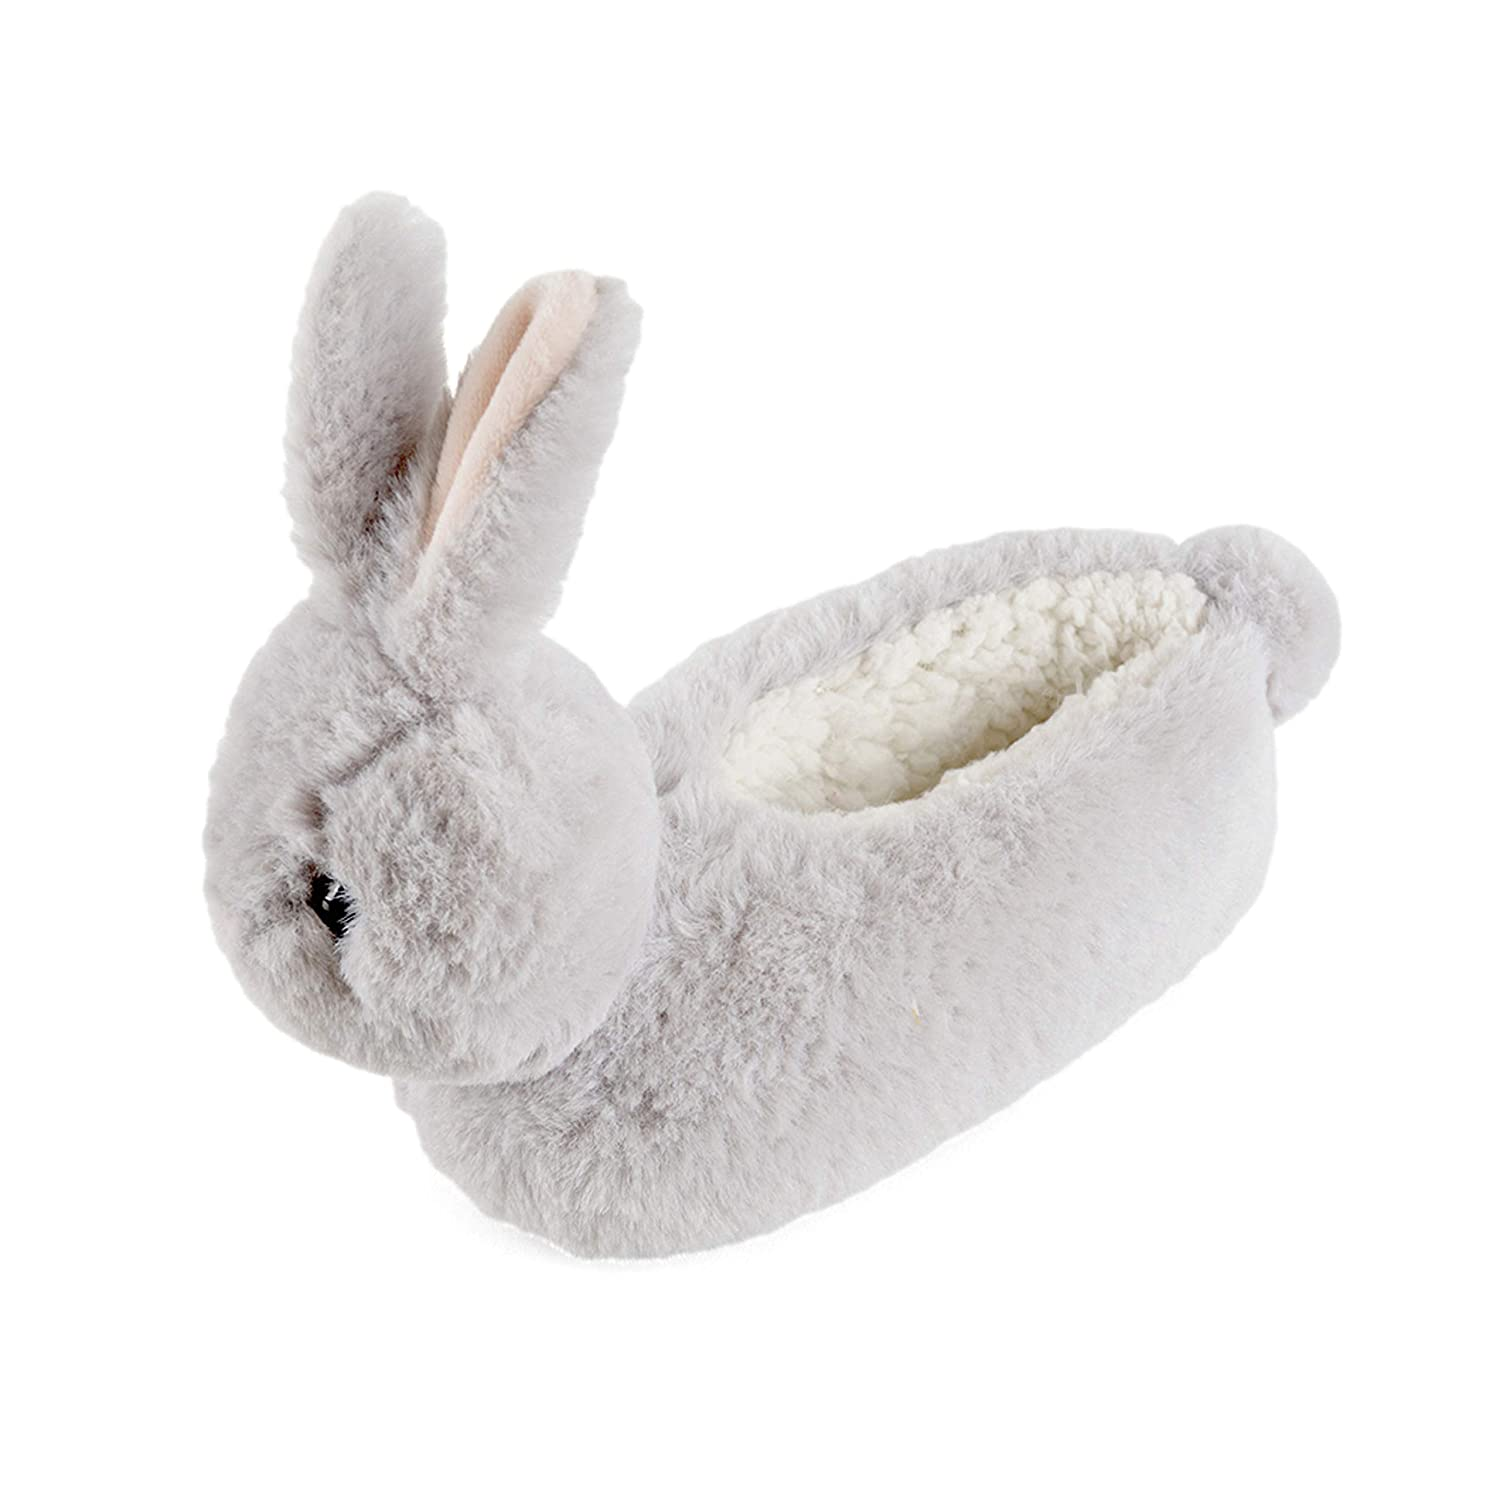 4f890d94d7 Childrens Girls 3D Bunny Rabbit Novelty Faux Fur Slippers - Grey - Toddler  Size UK 13 1  Amazon.co.uk  Shoes   Bags